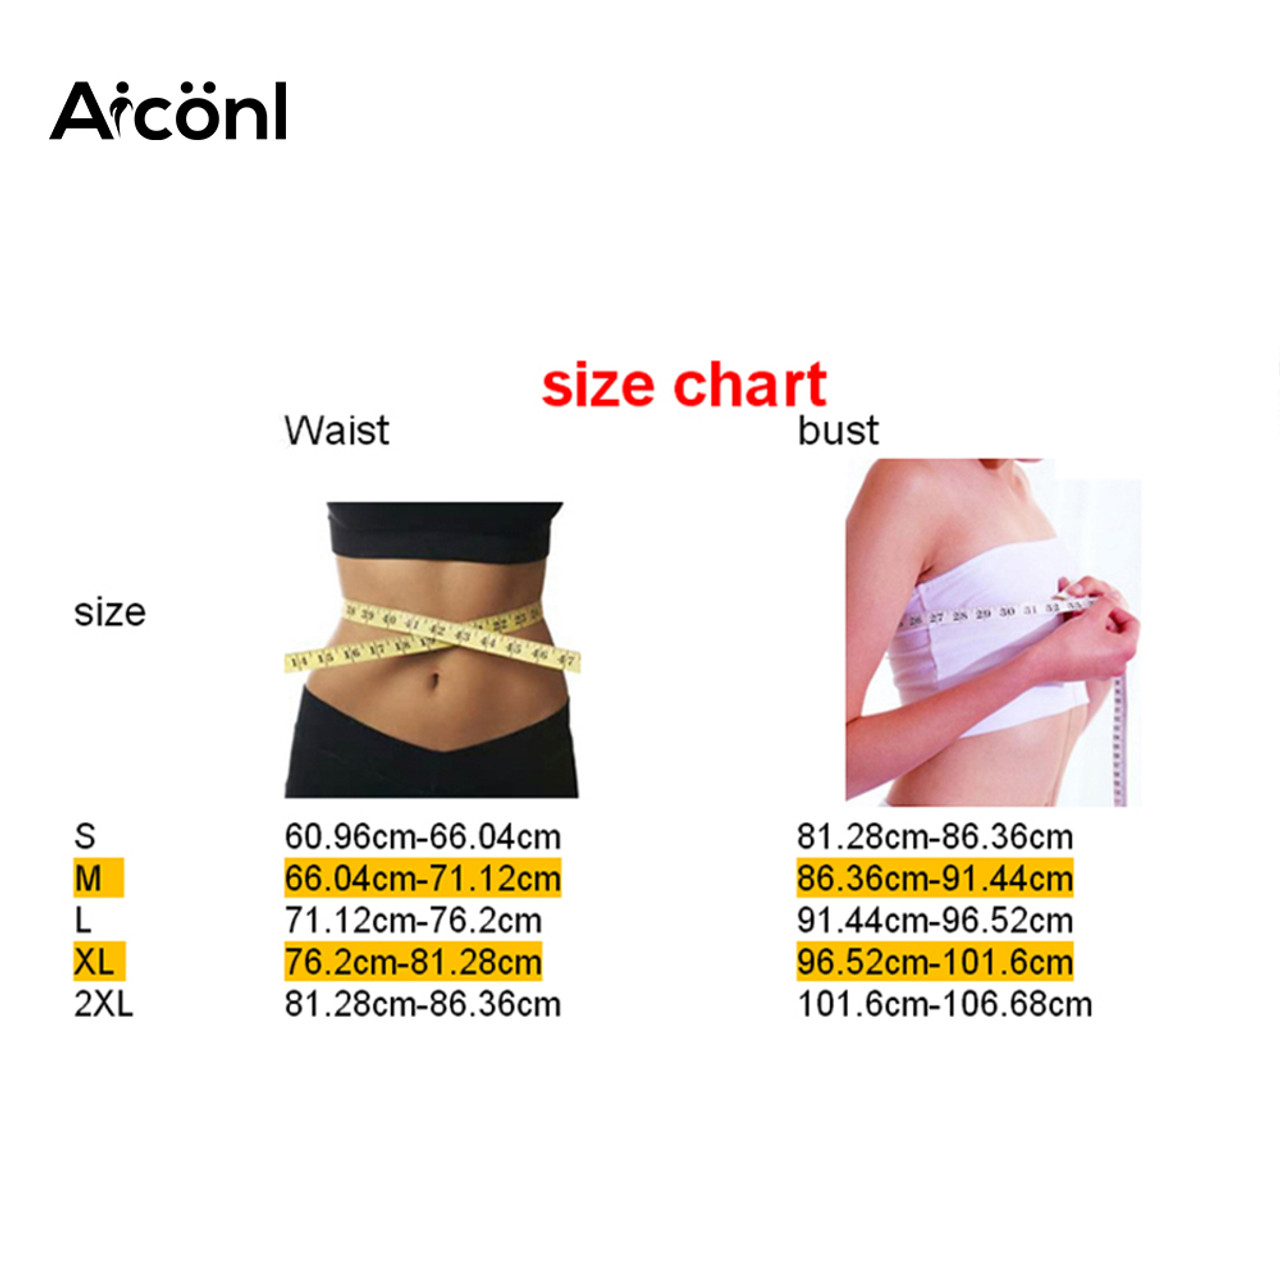 a8519e8bae ... Corset Steampunk Sexy top Women Shaper Waist Slimming Gothic Bustiers  corselet Waist Trainer Lace Sexy Corset ...